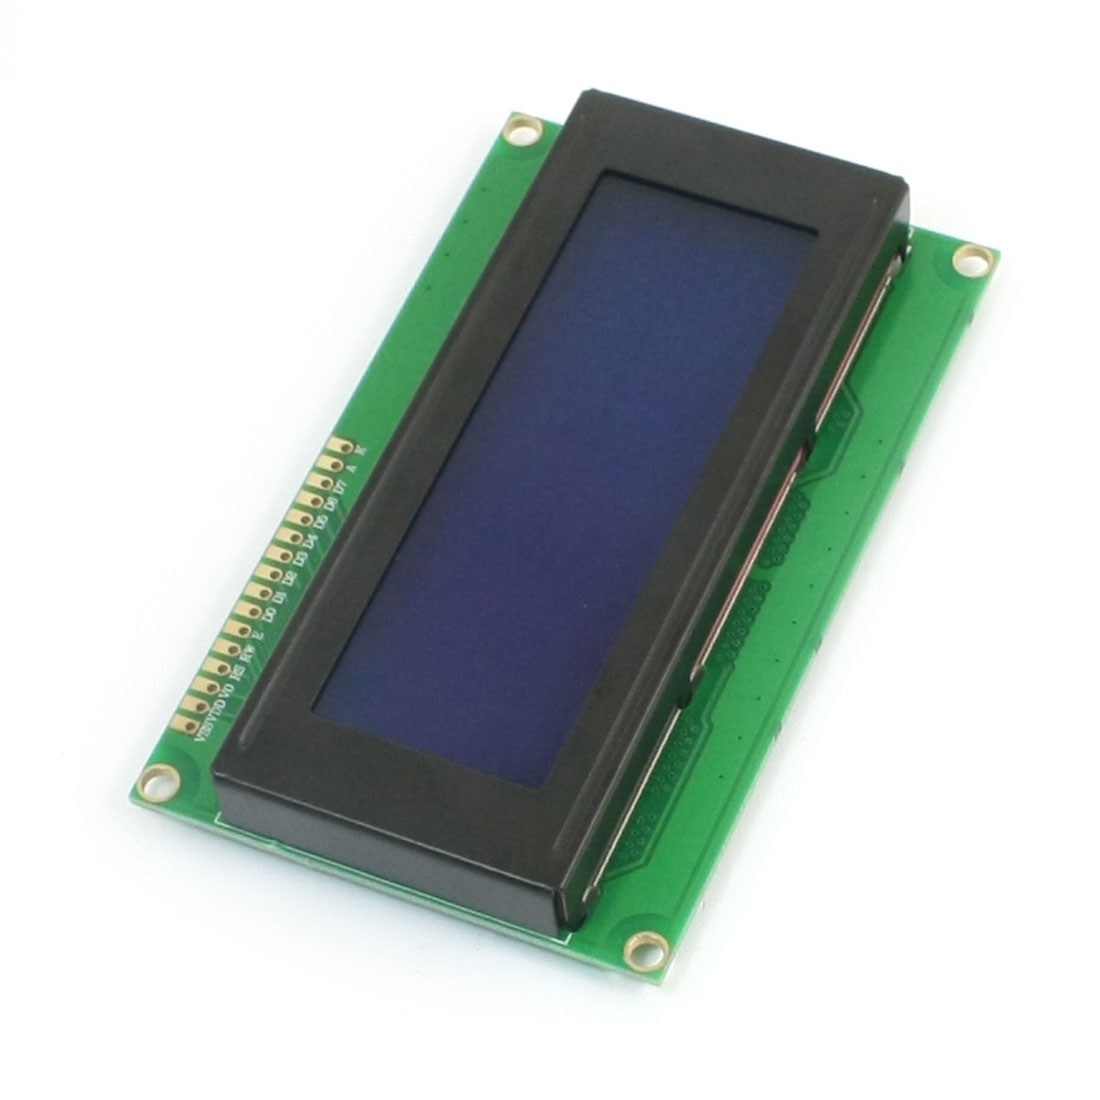 J204A 2004A 4.5V Voltage Blue Screen LCD Display Controller Module PCB Board 100mm x 60mm